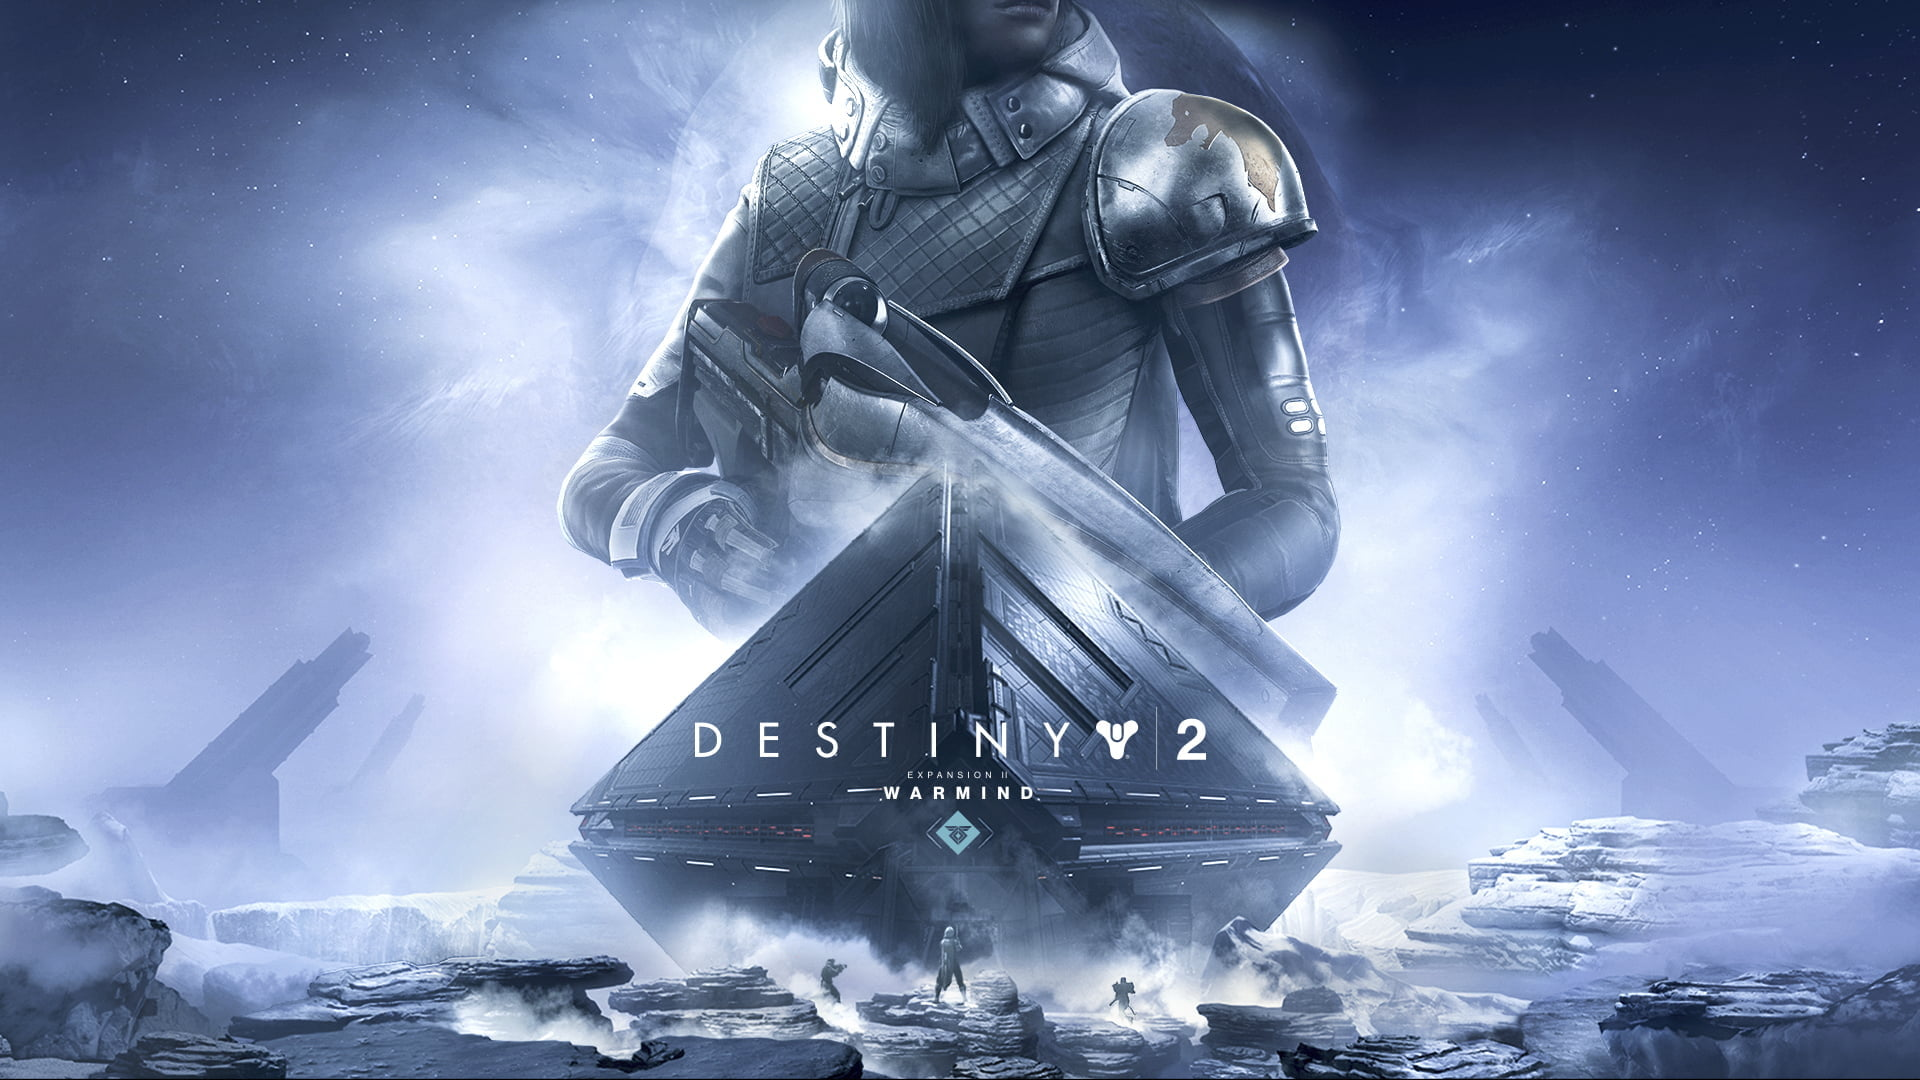 Photo of Destiny 2 Expansion II: Warmind Brings New Gear, Endgame Content, and Activities